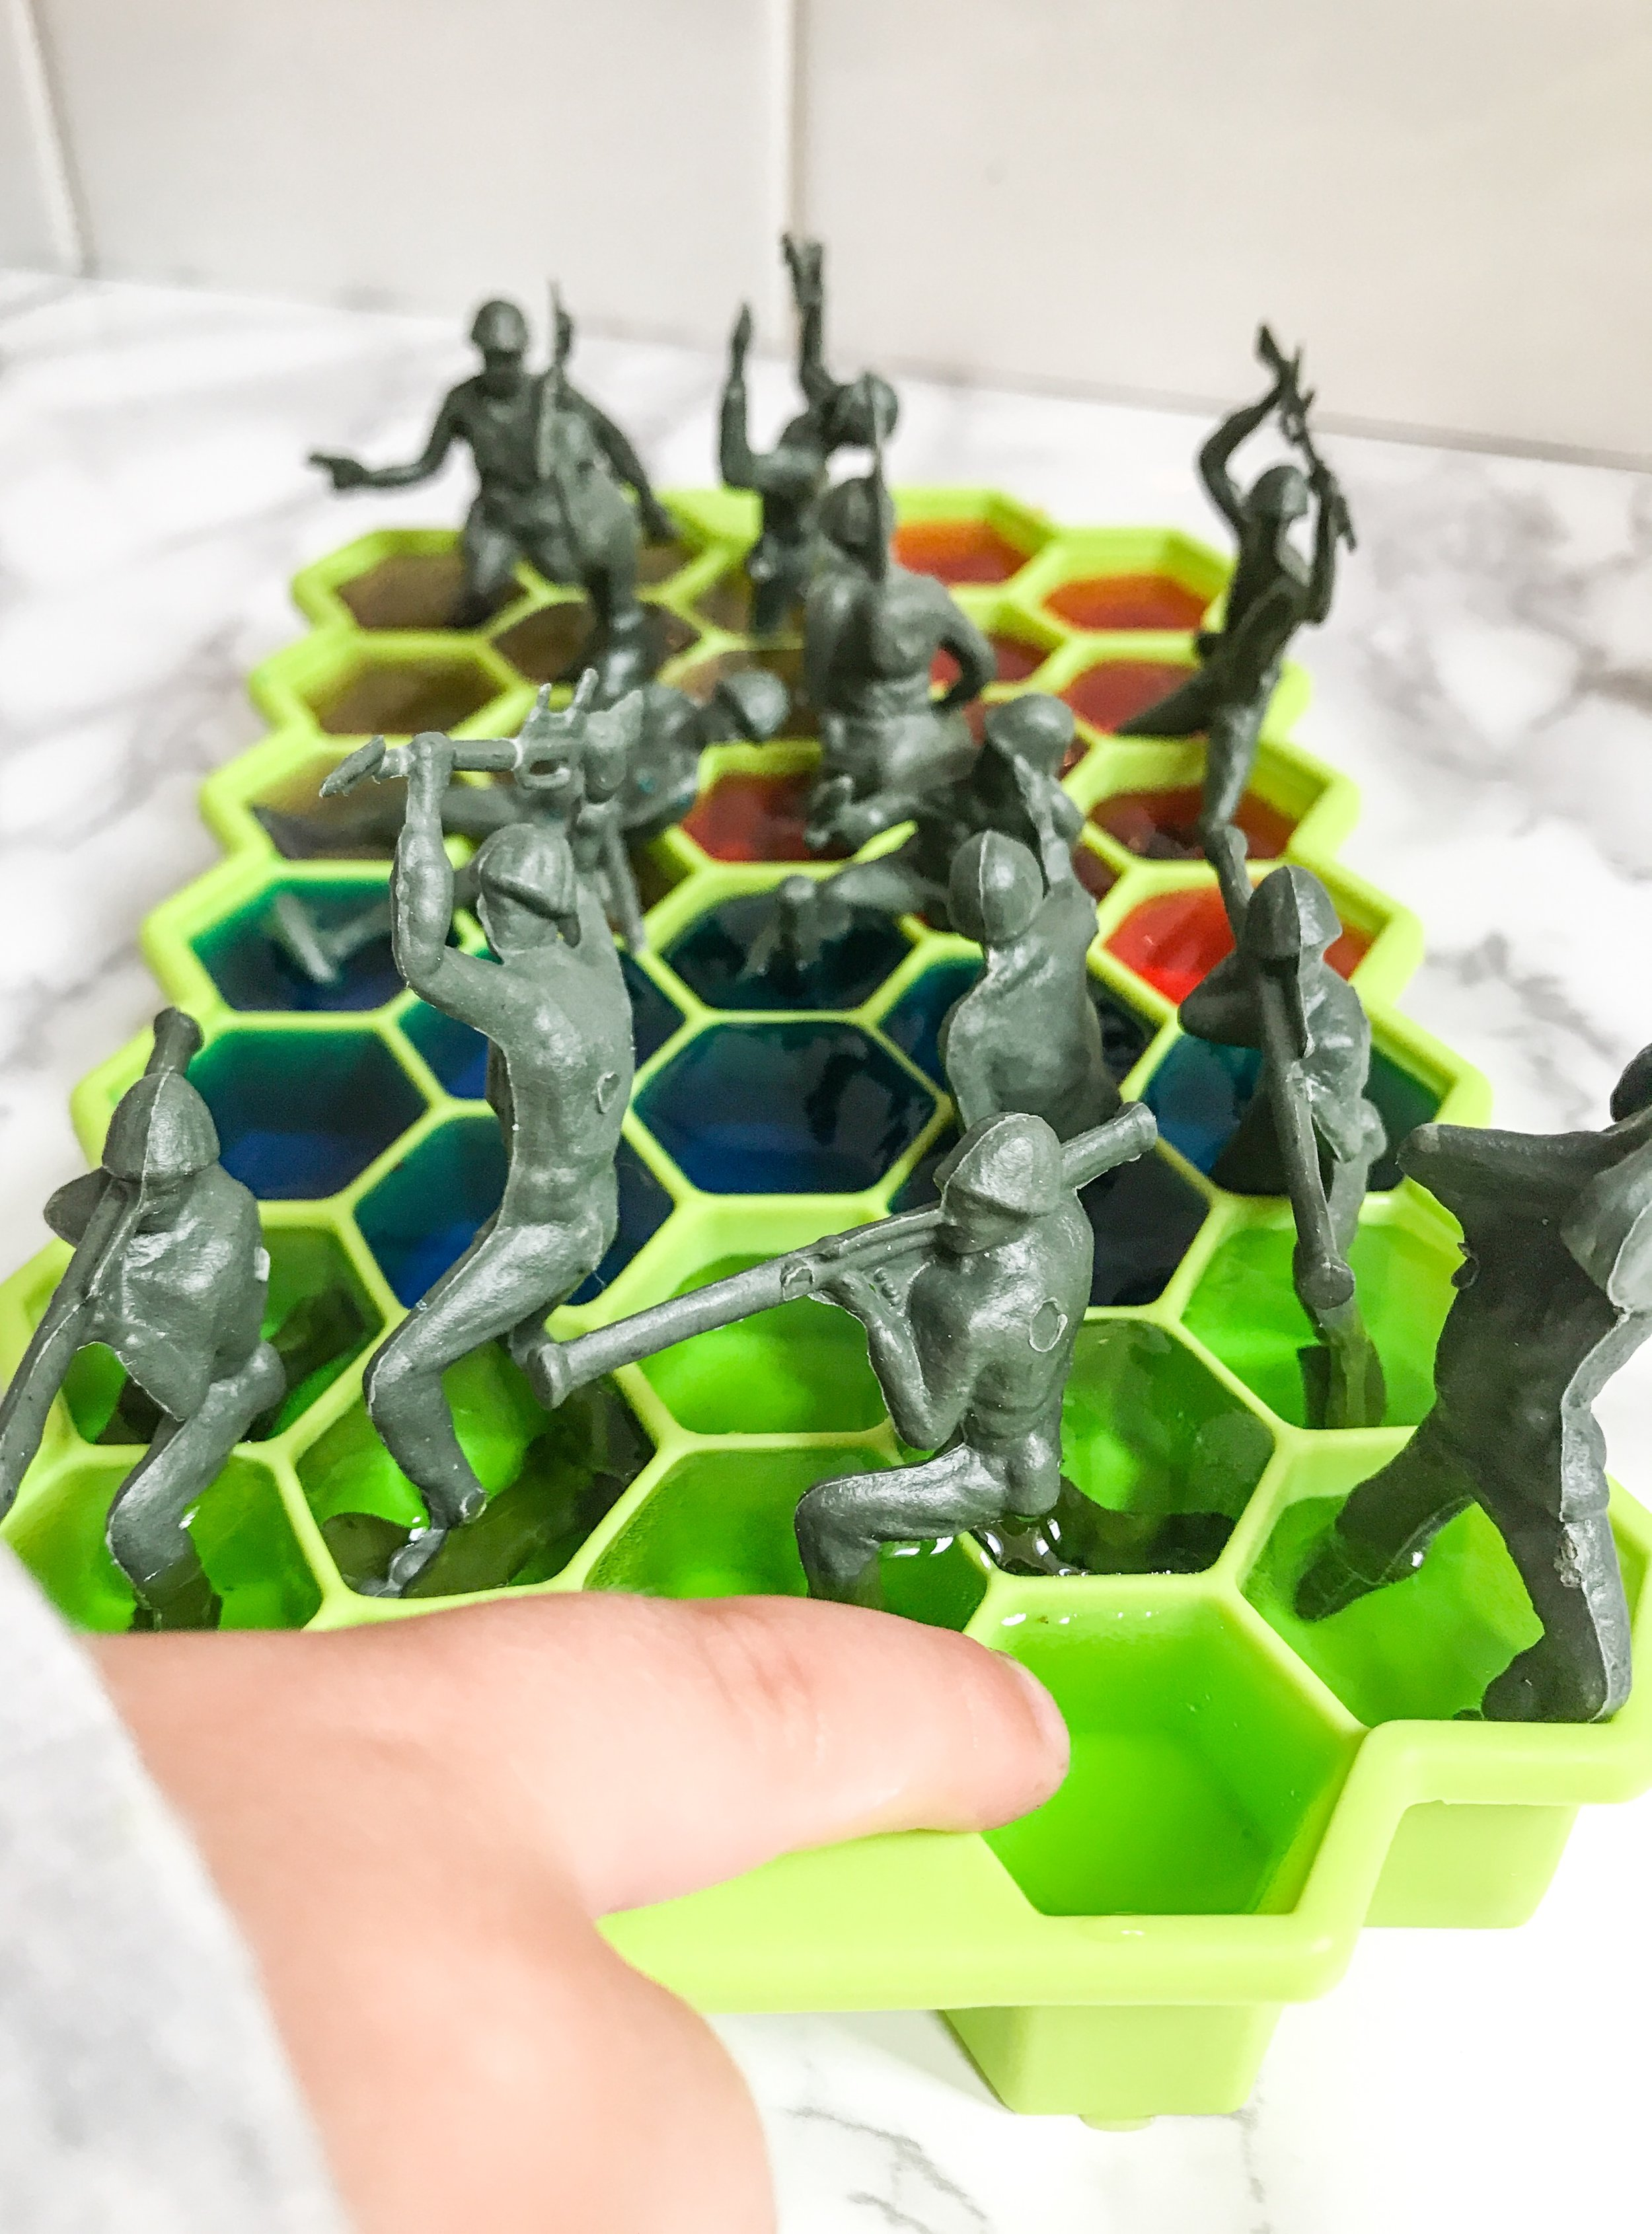 Rainbow Ice Army Men - How Ice Crystals Are Formed